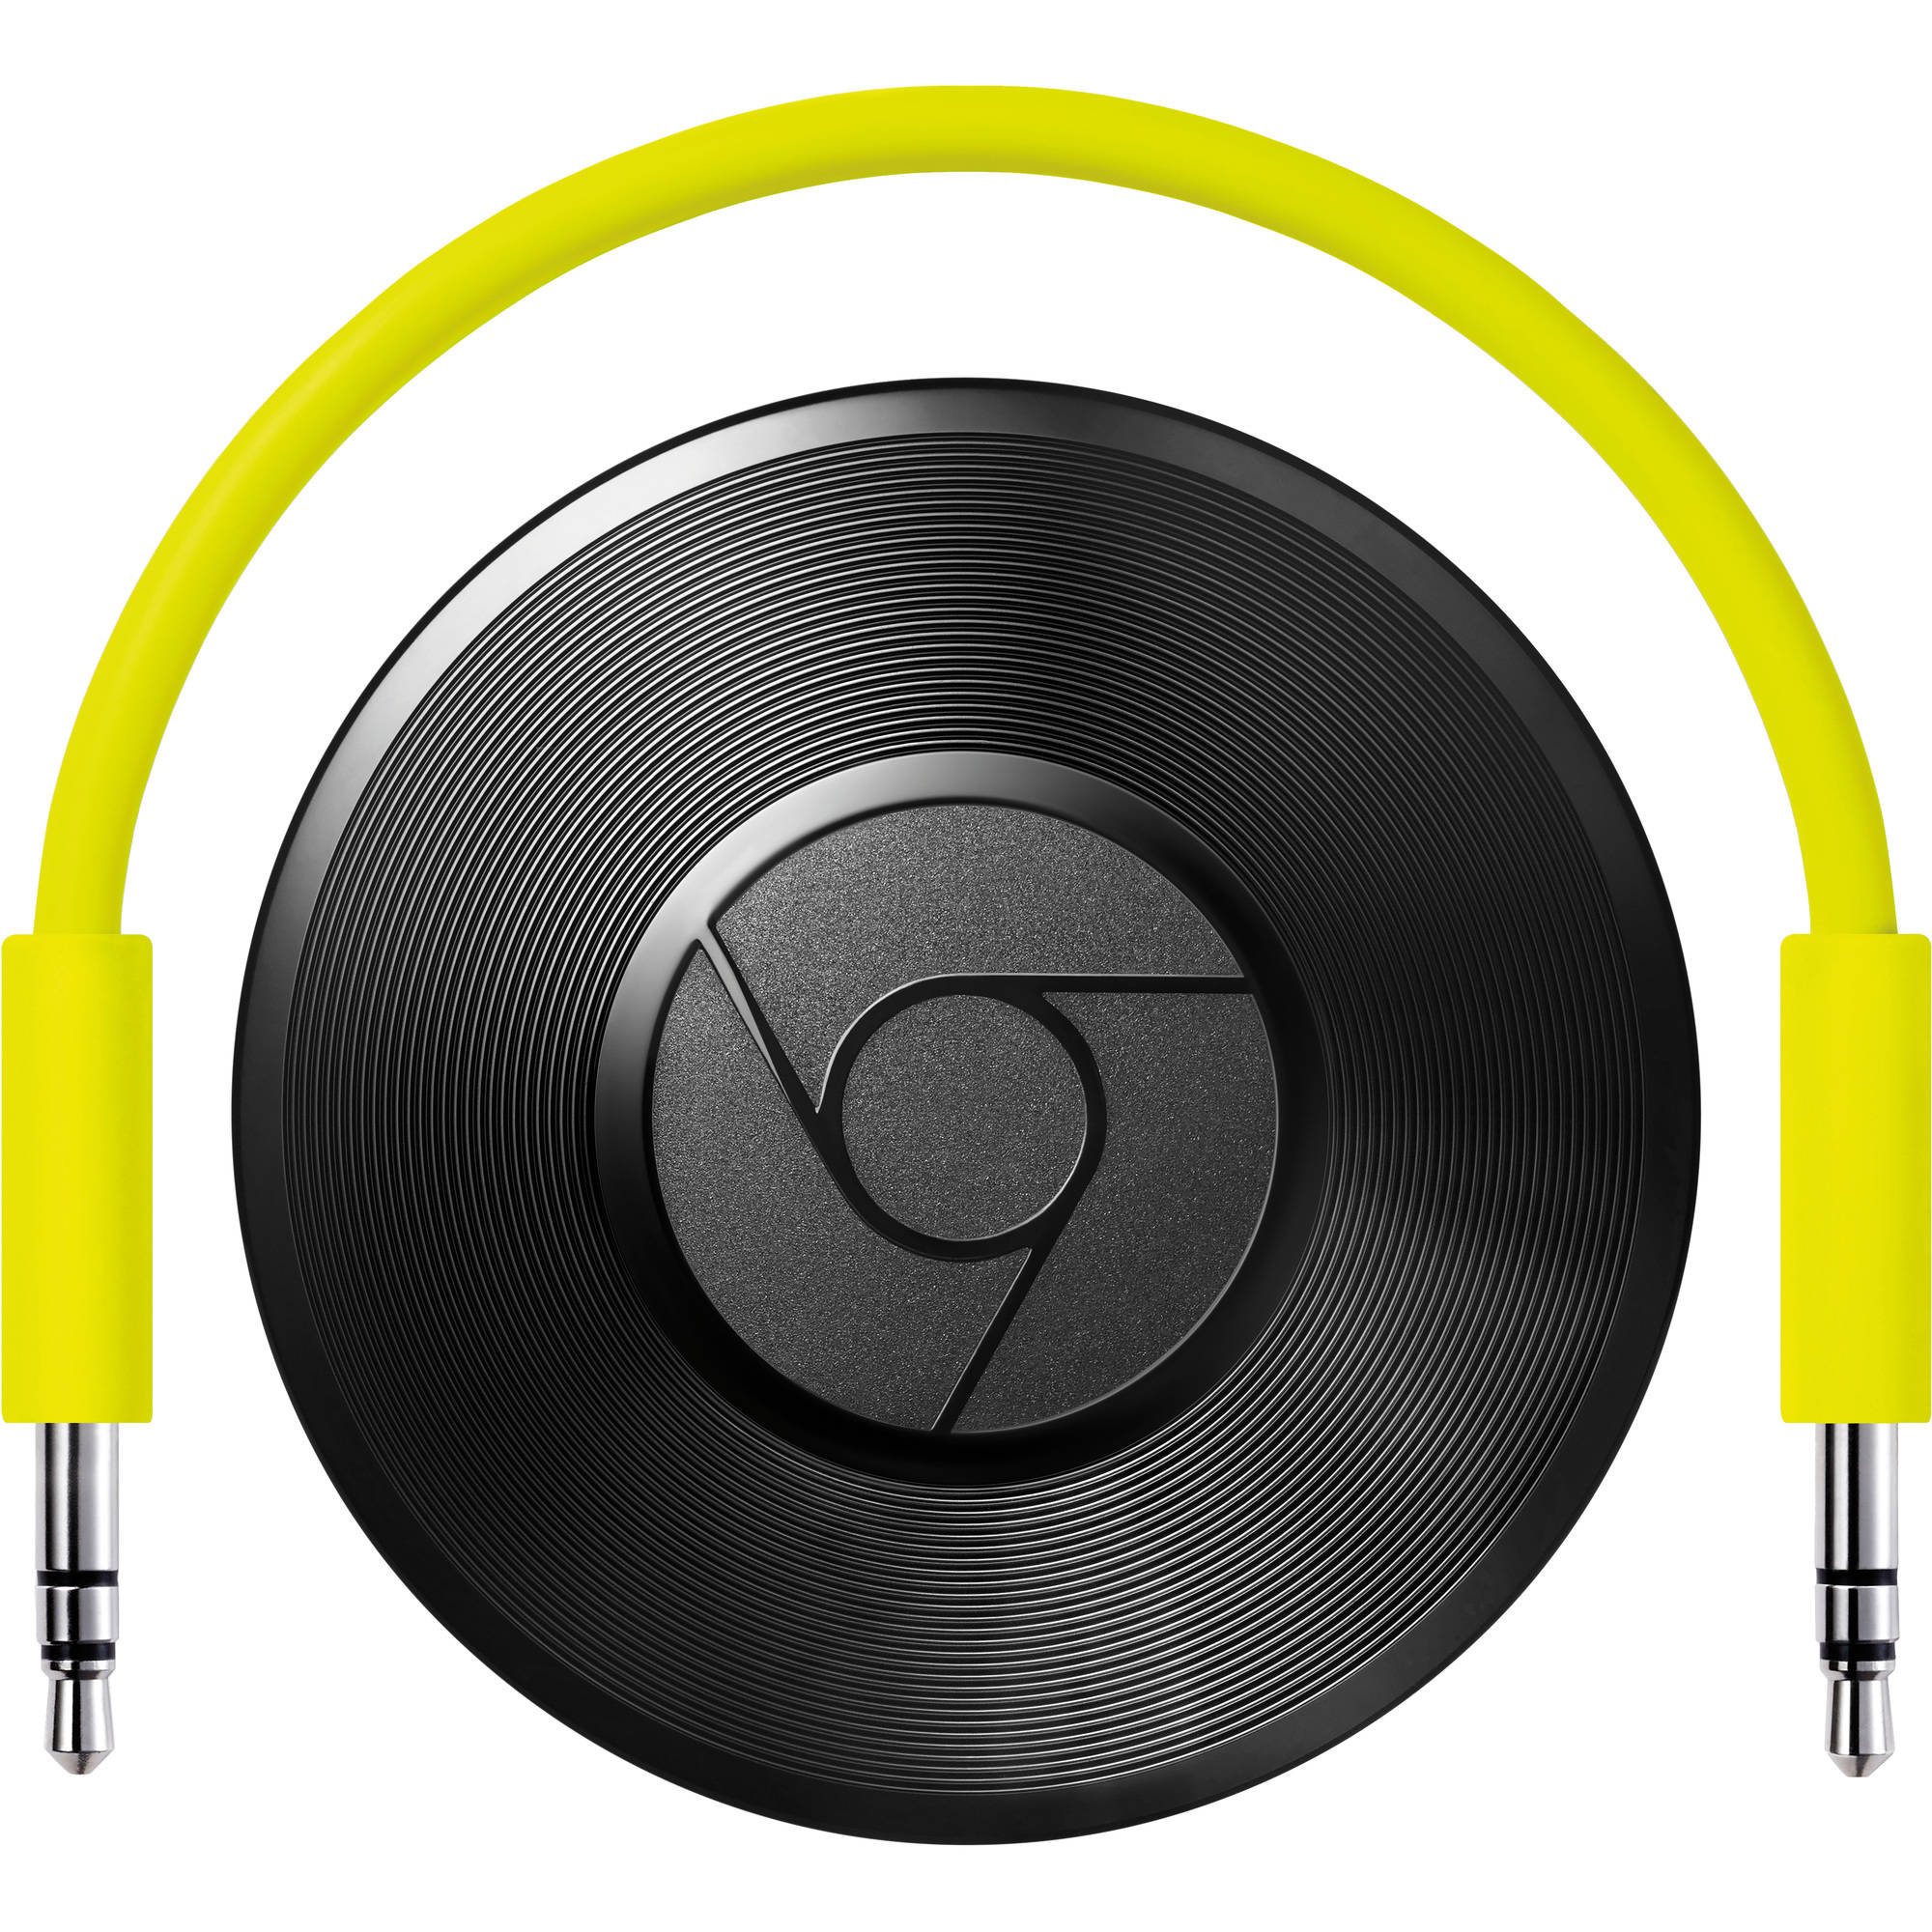 Google Chromecast Audio product image